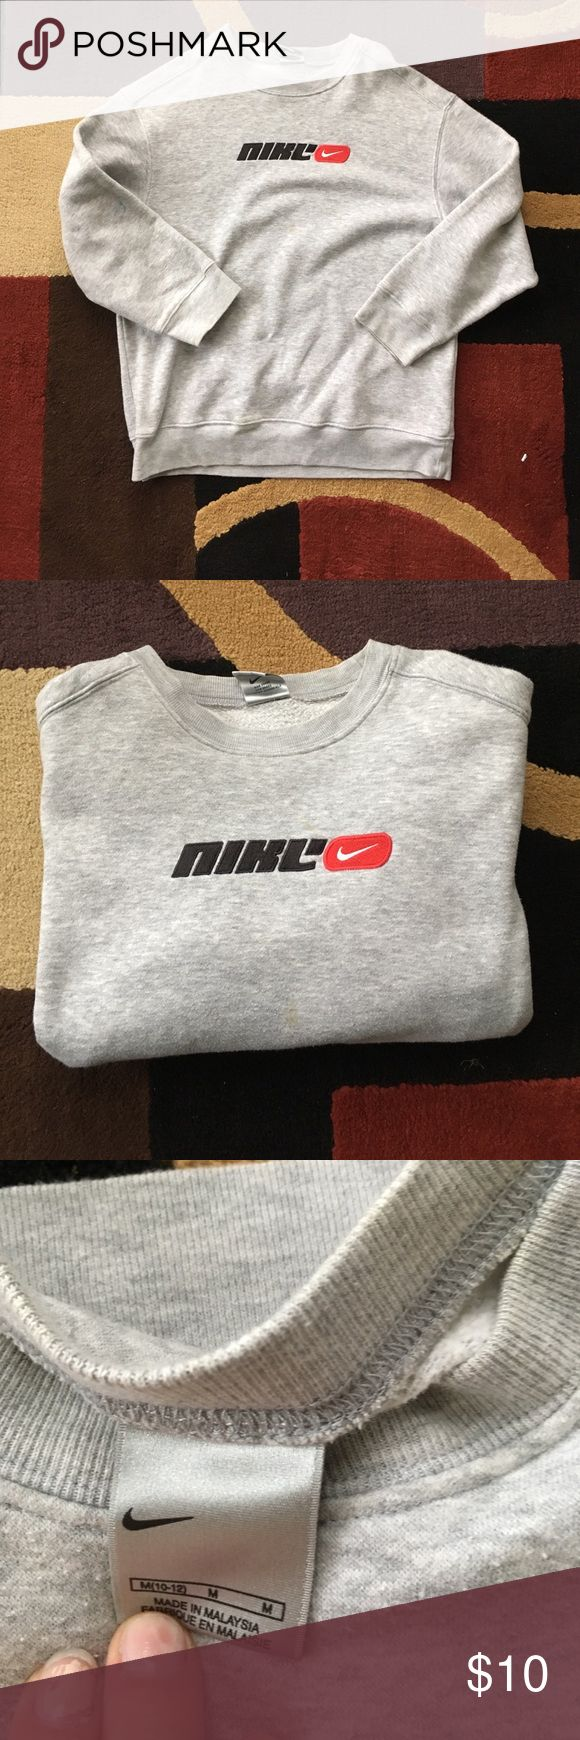 Child Nike crew neck! 🎉 Nike crew neck. General size could fit a petite woman, but the arms of the sweatshirt are short. Trendy. Two small stains that you can see in last pic, but good condition otherwise Nike Tops Sweatshirts & Hoodies